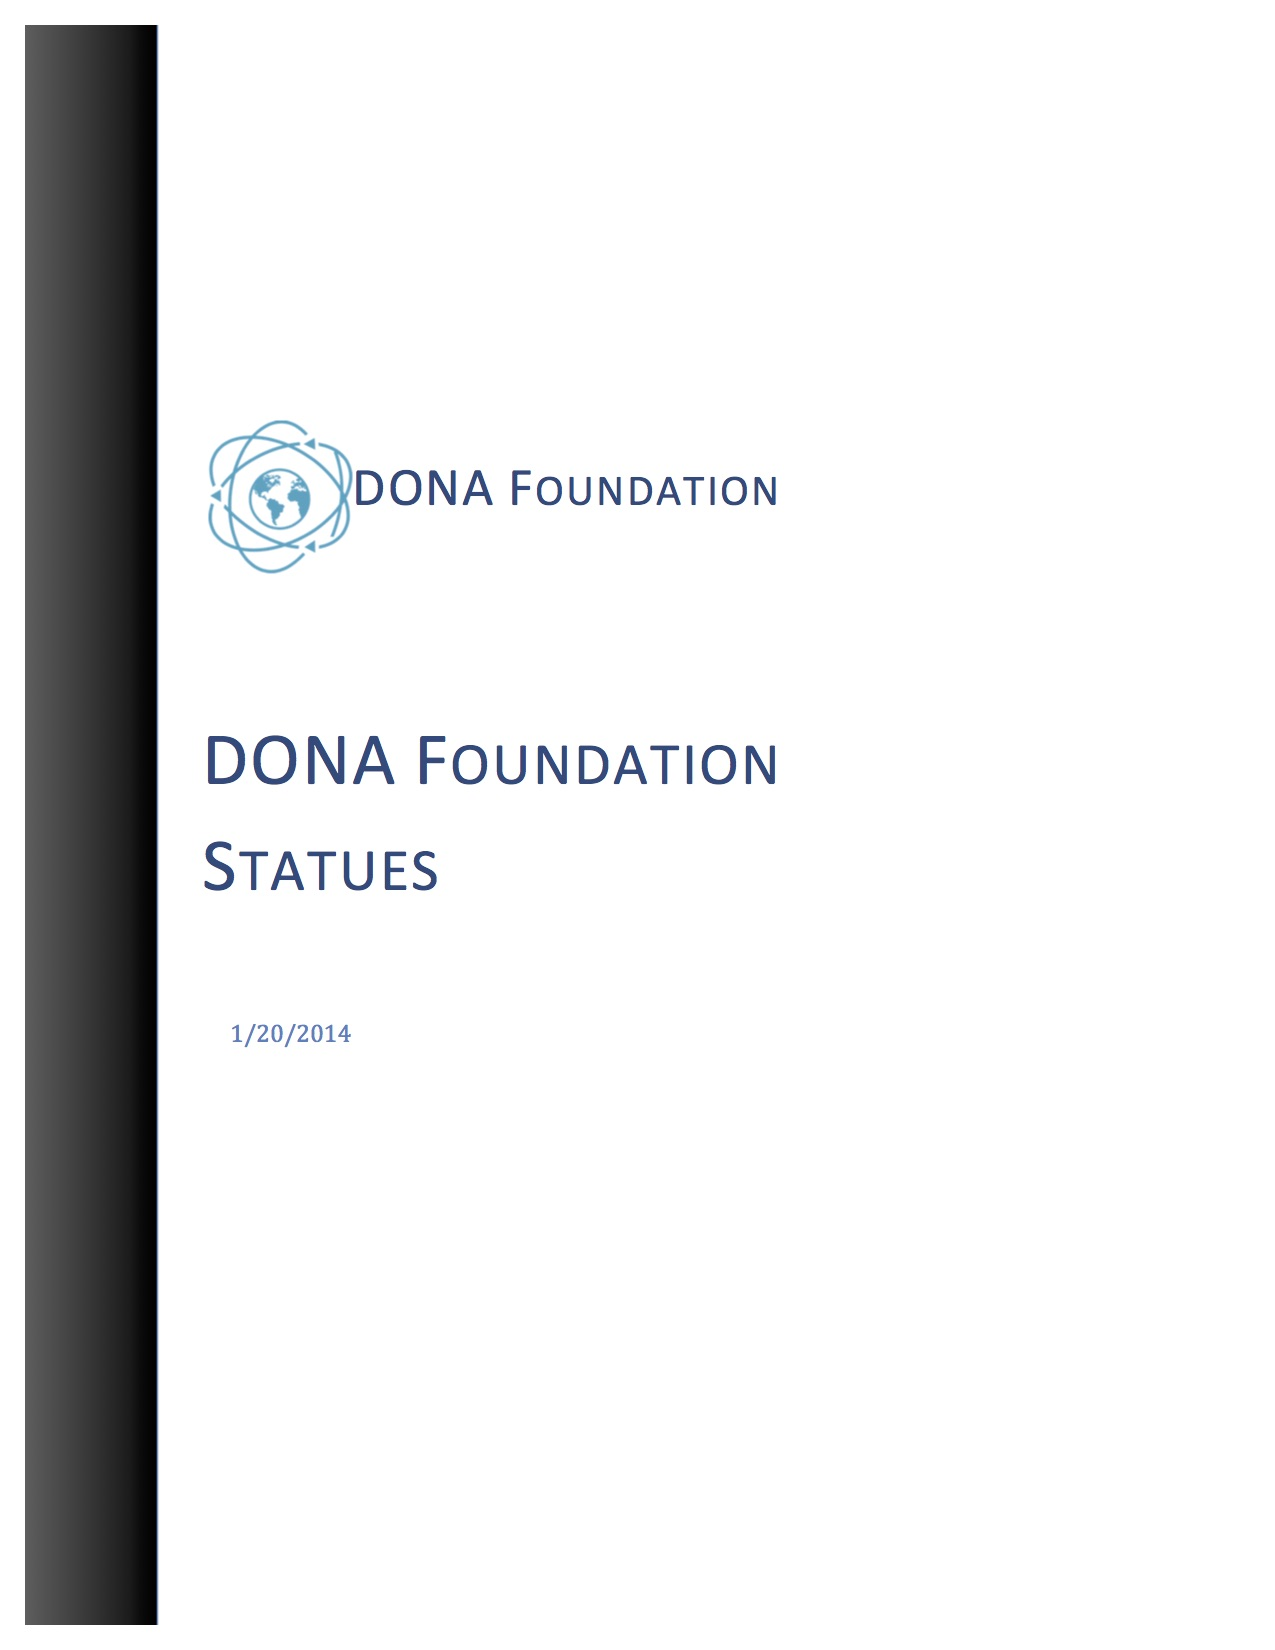 The DONA Foundation Statutes